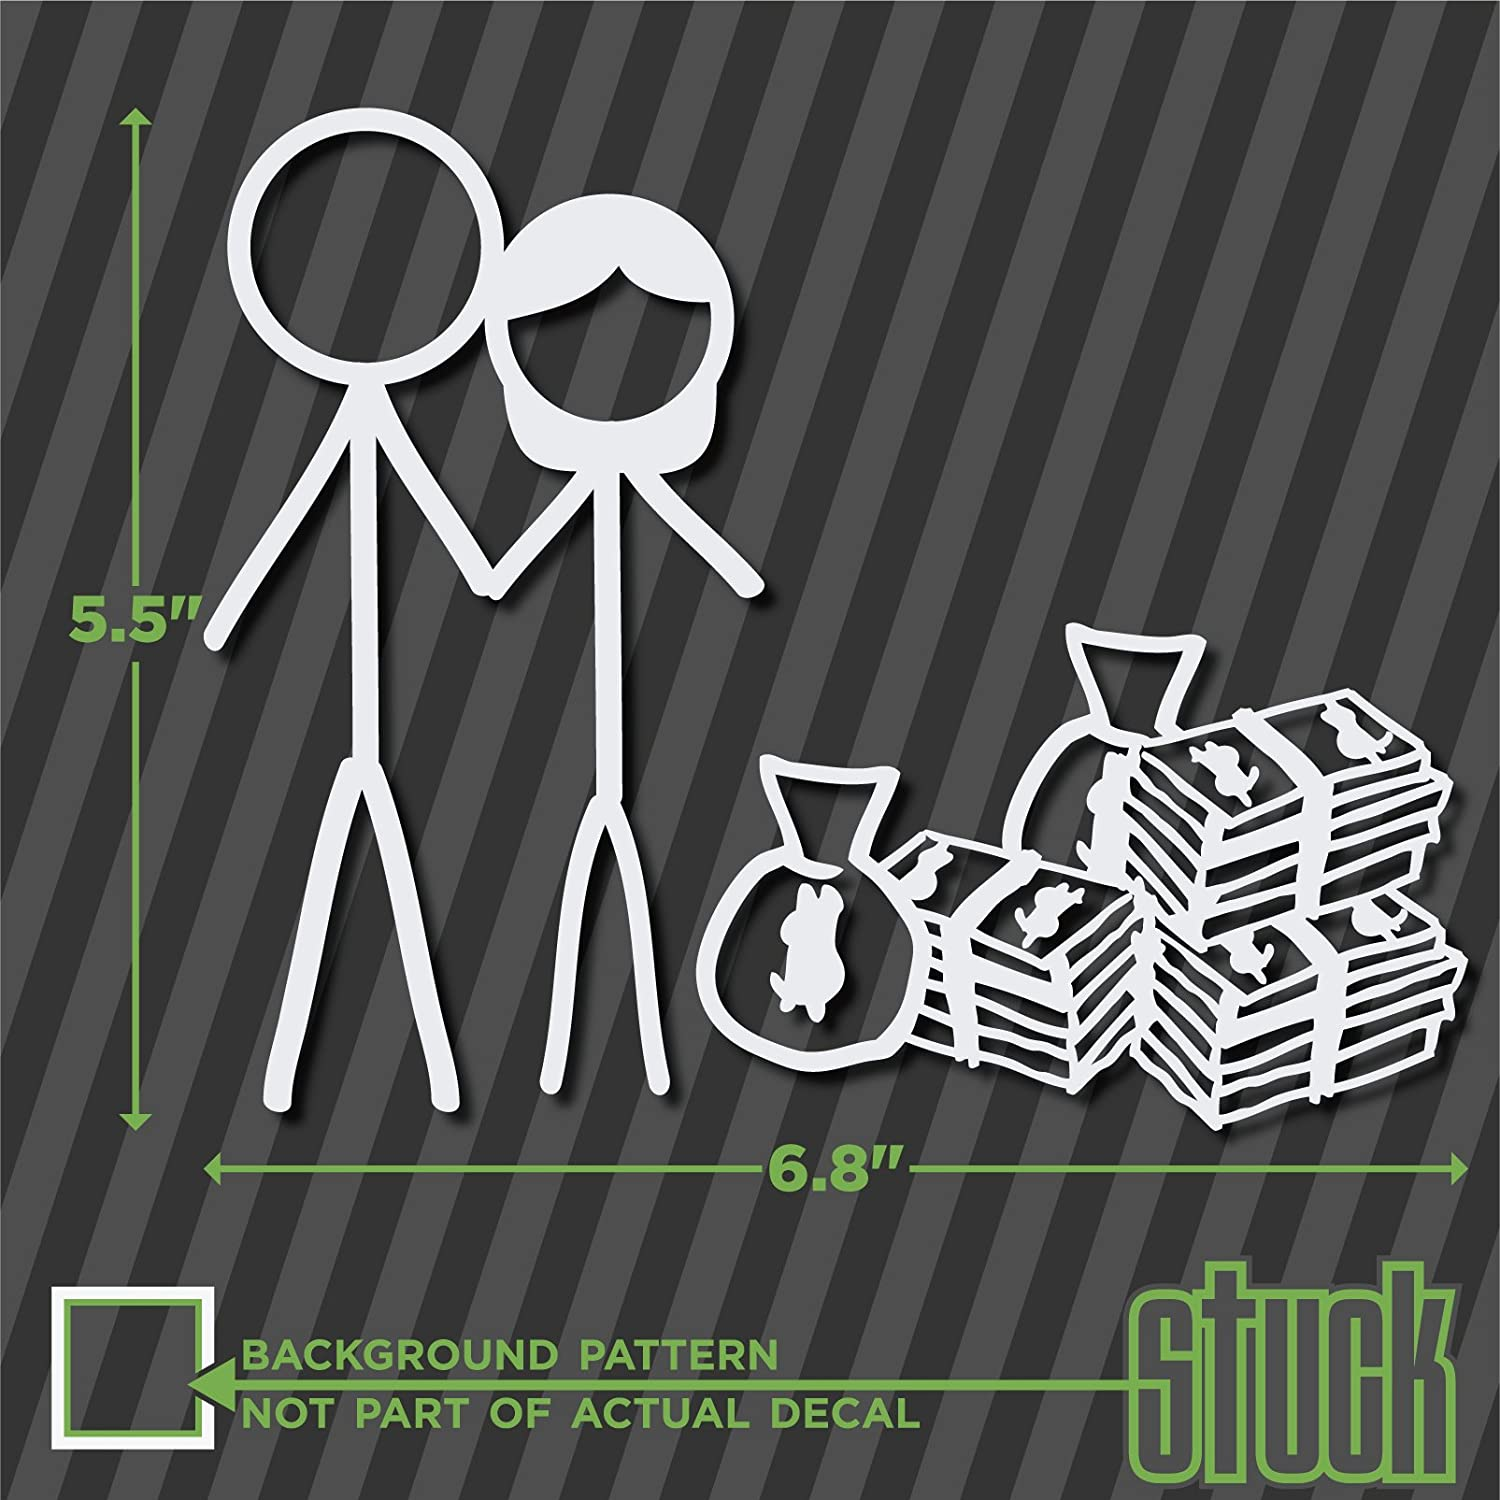 Amazon.com: Stick Figure Couple With Money - 6.8